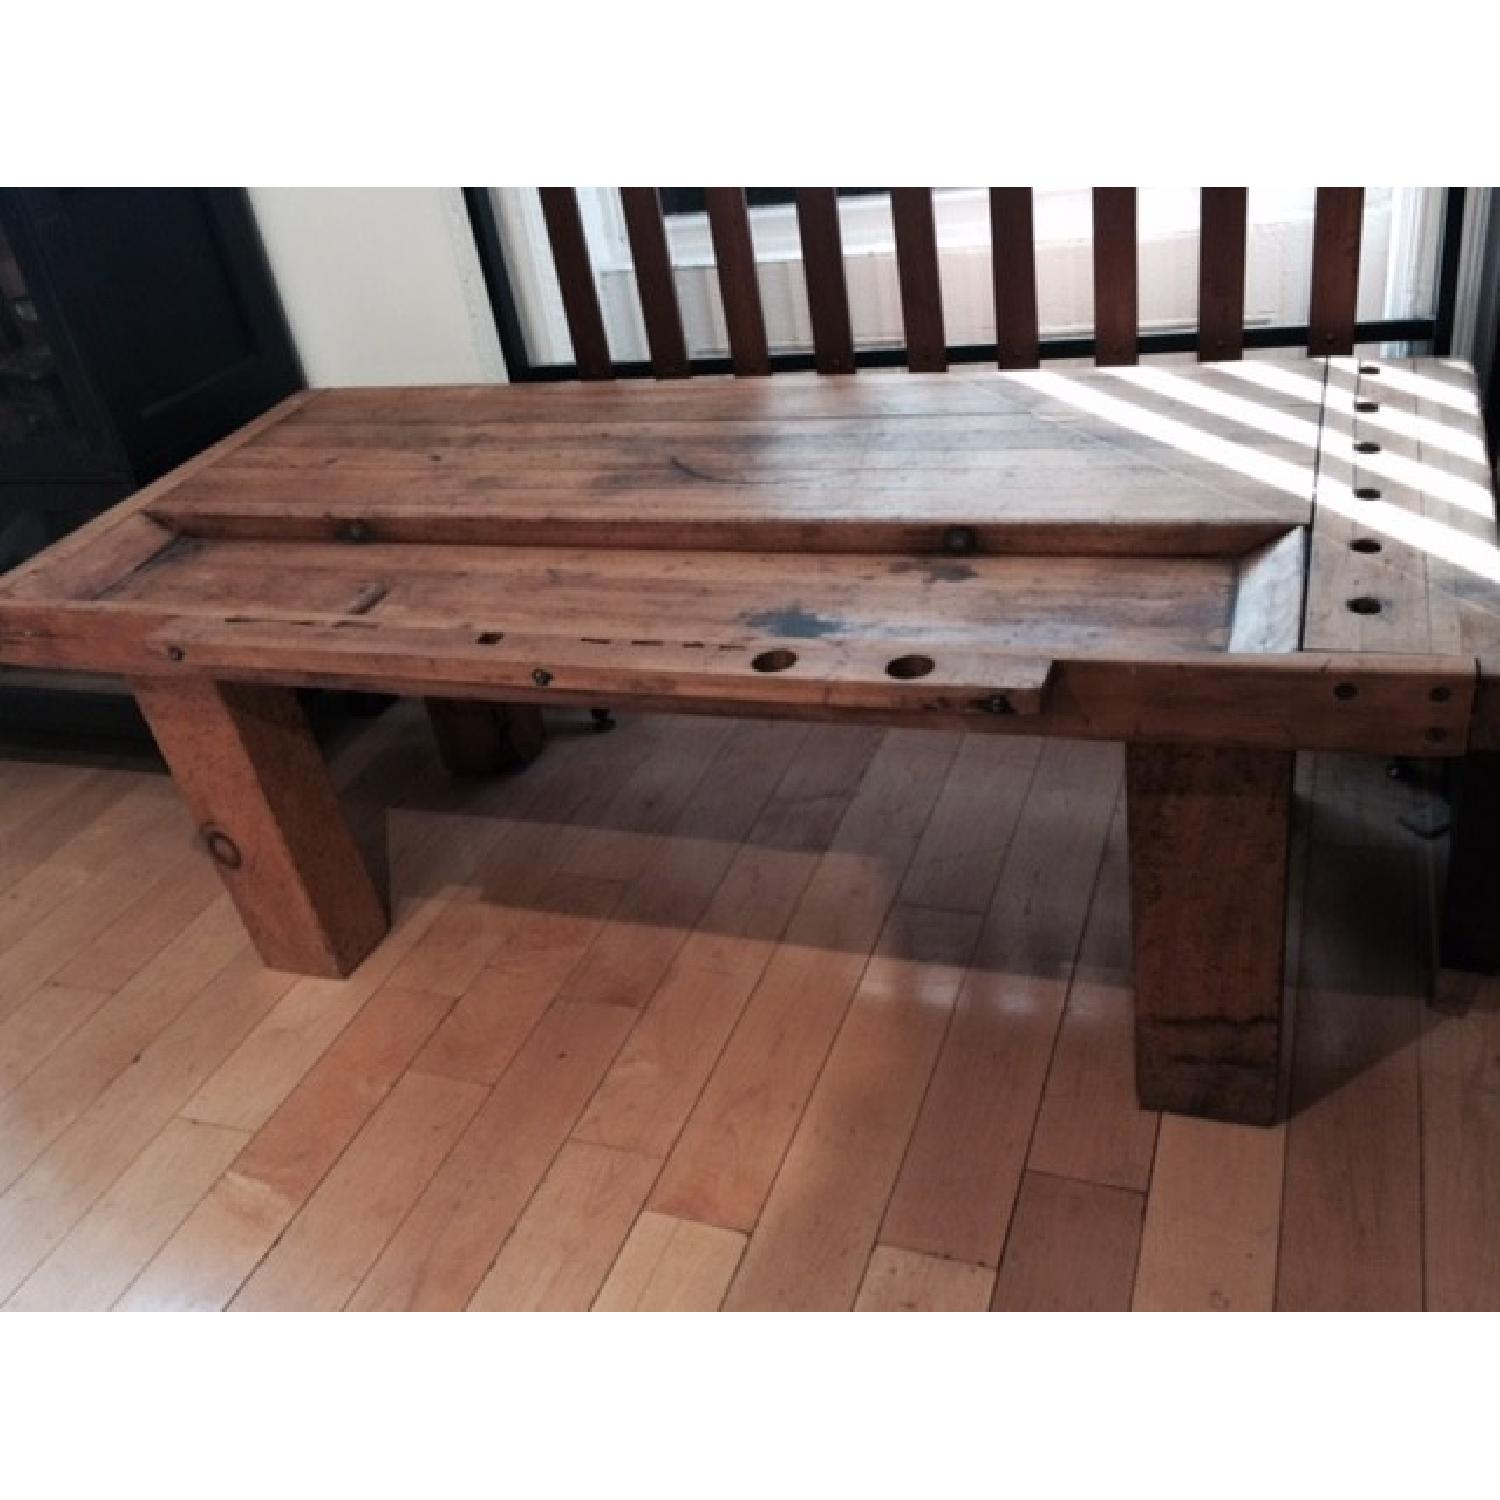 Rustic Workbench Coffee Table AptDeco